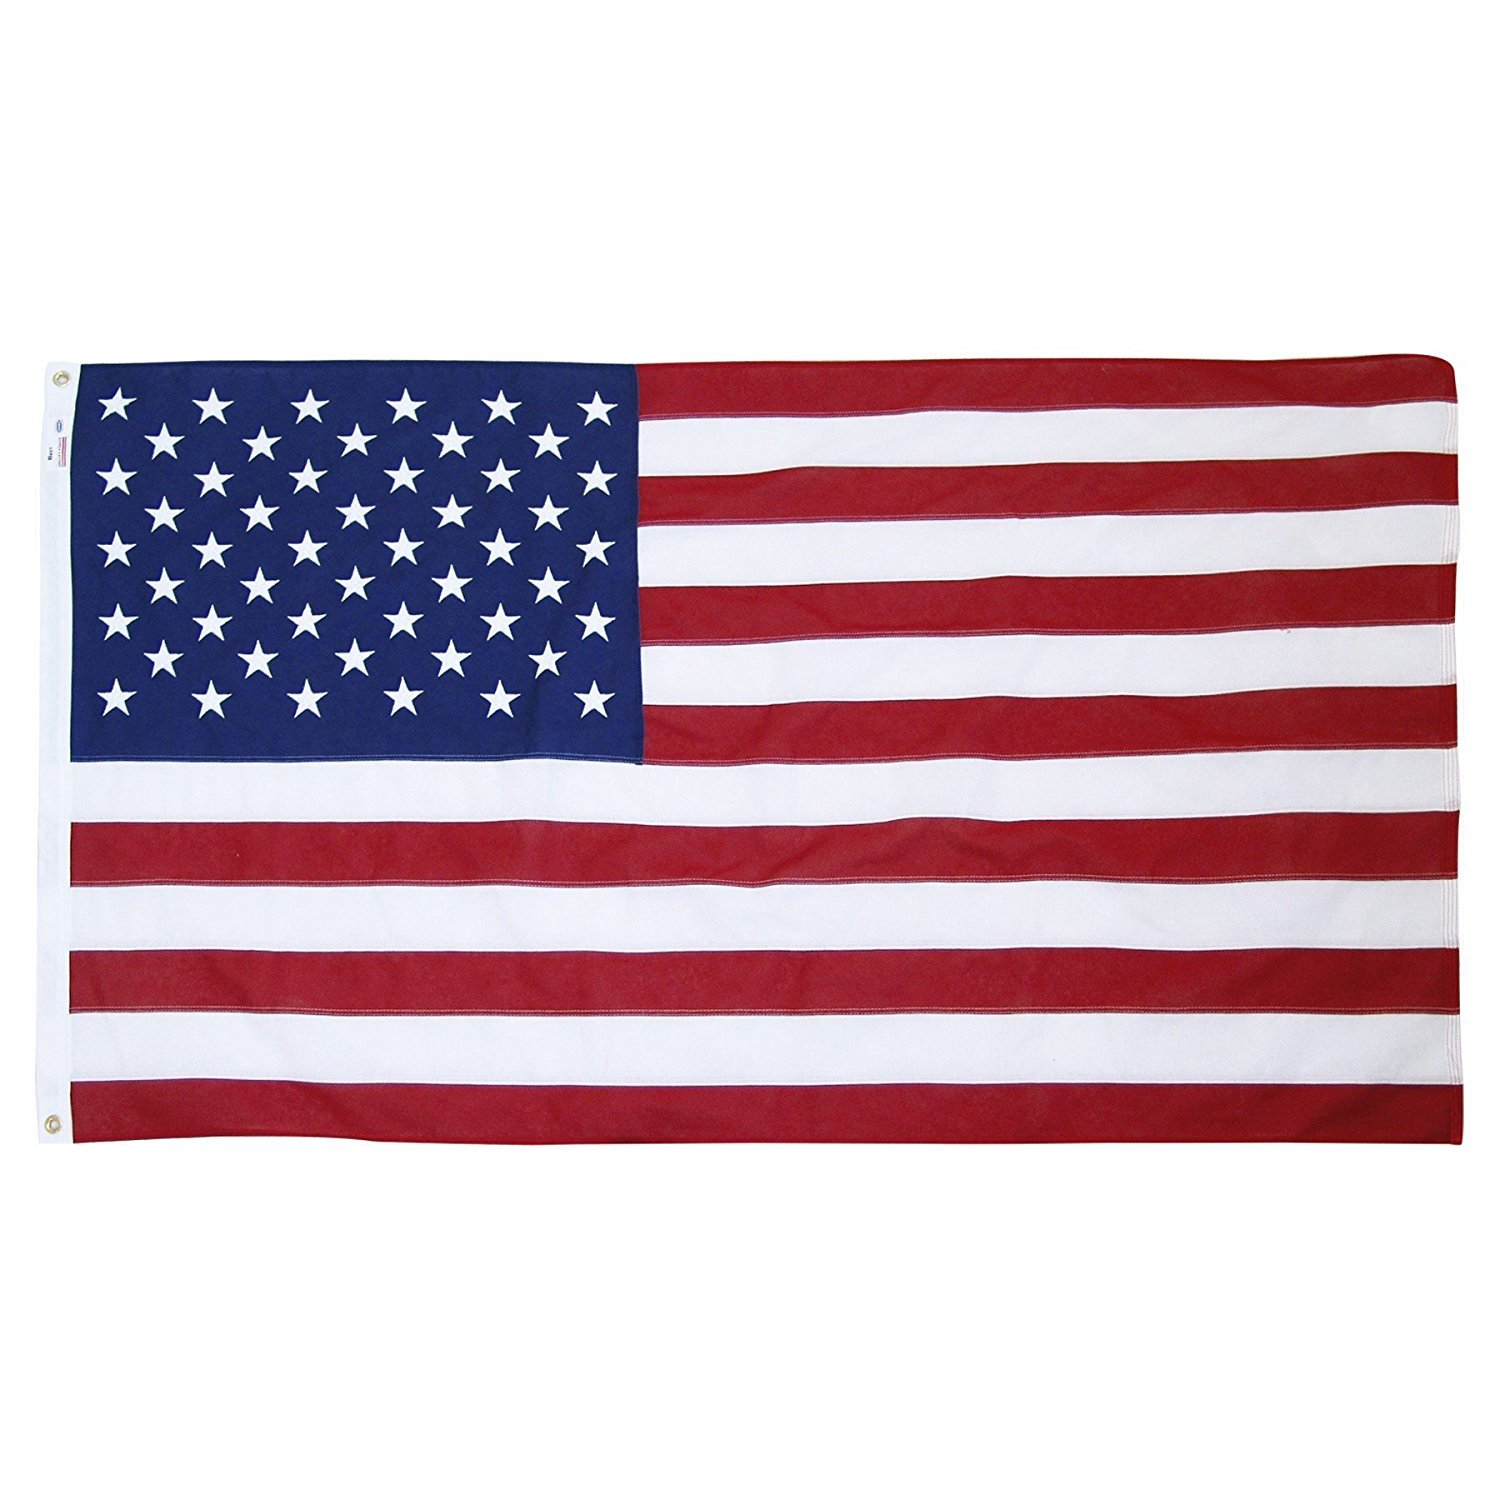 Valley Forge Brand American Flag 5x9.5ft Cotton by Valley Forge by Valley Forge